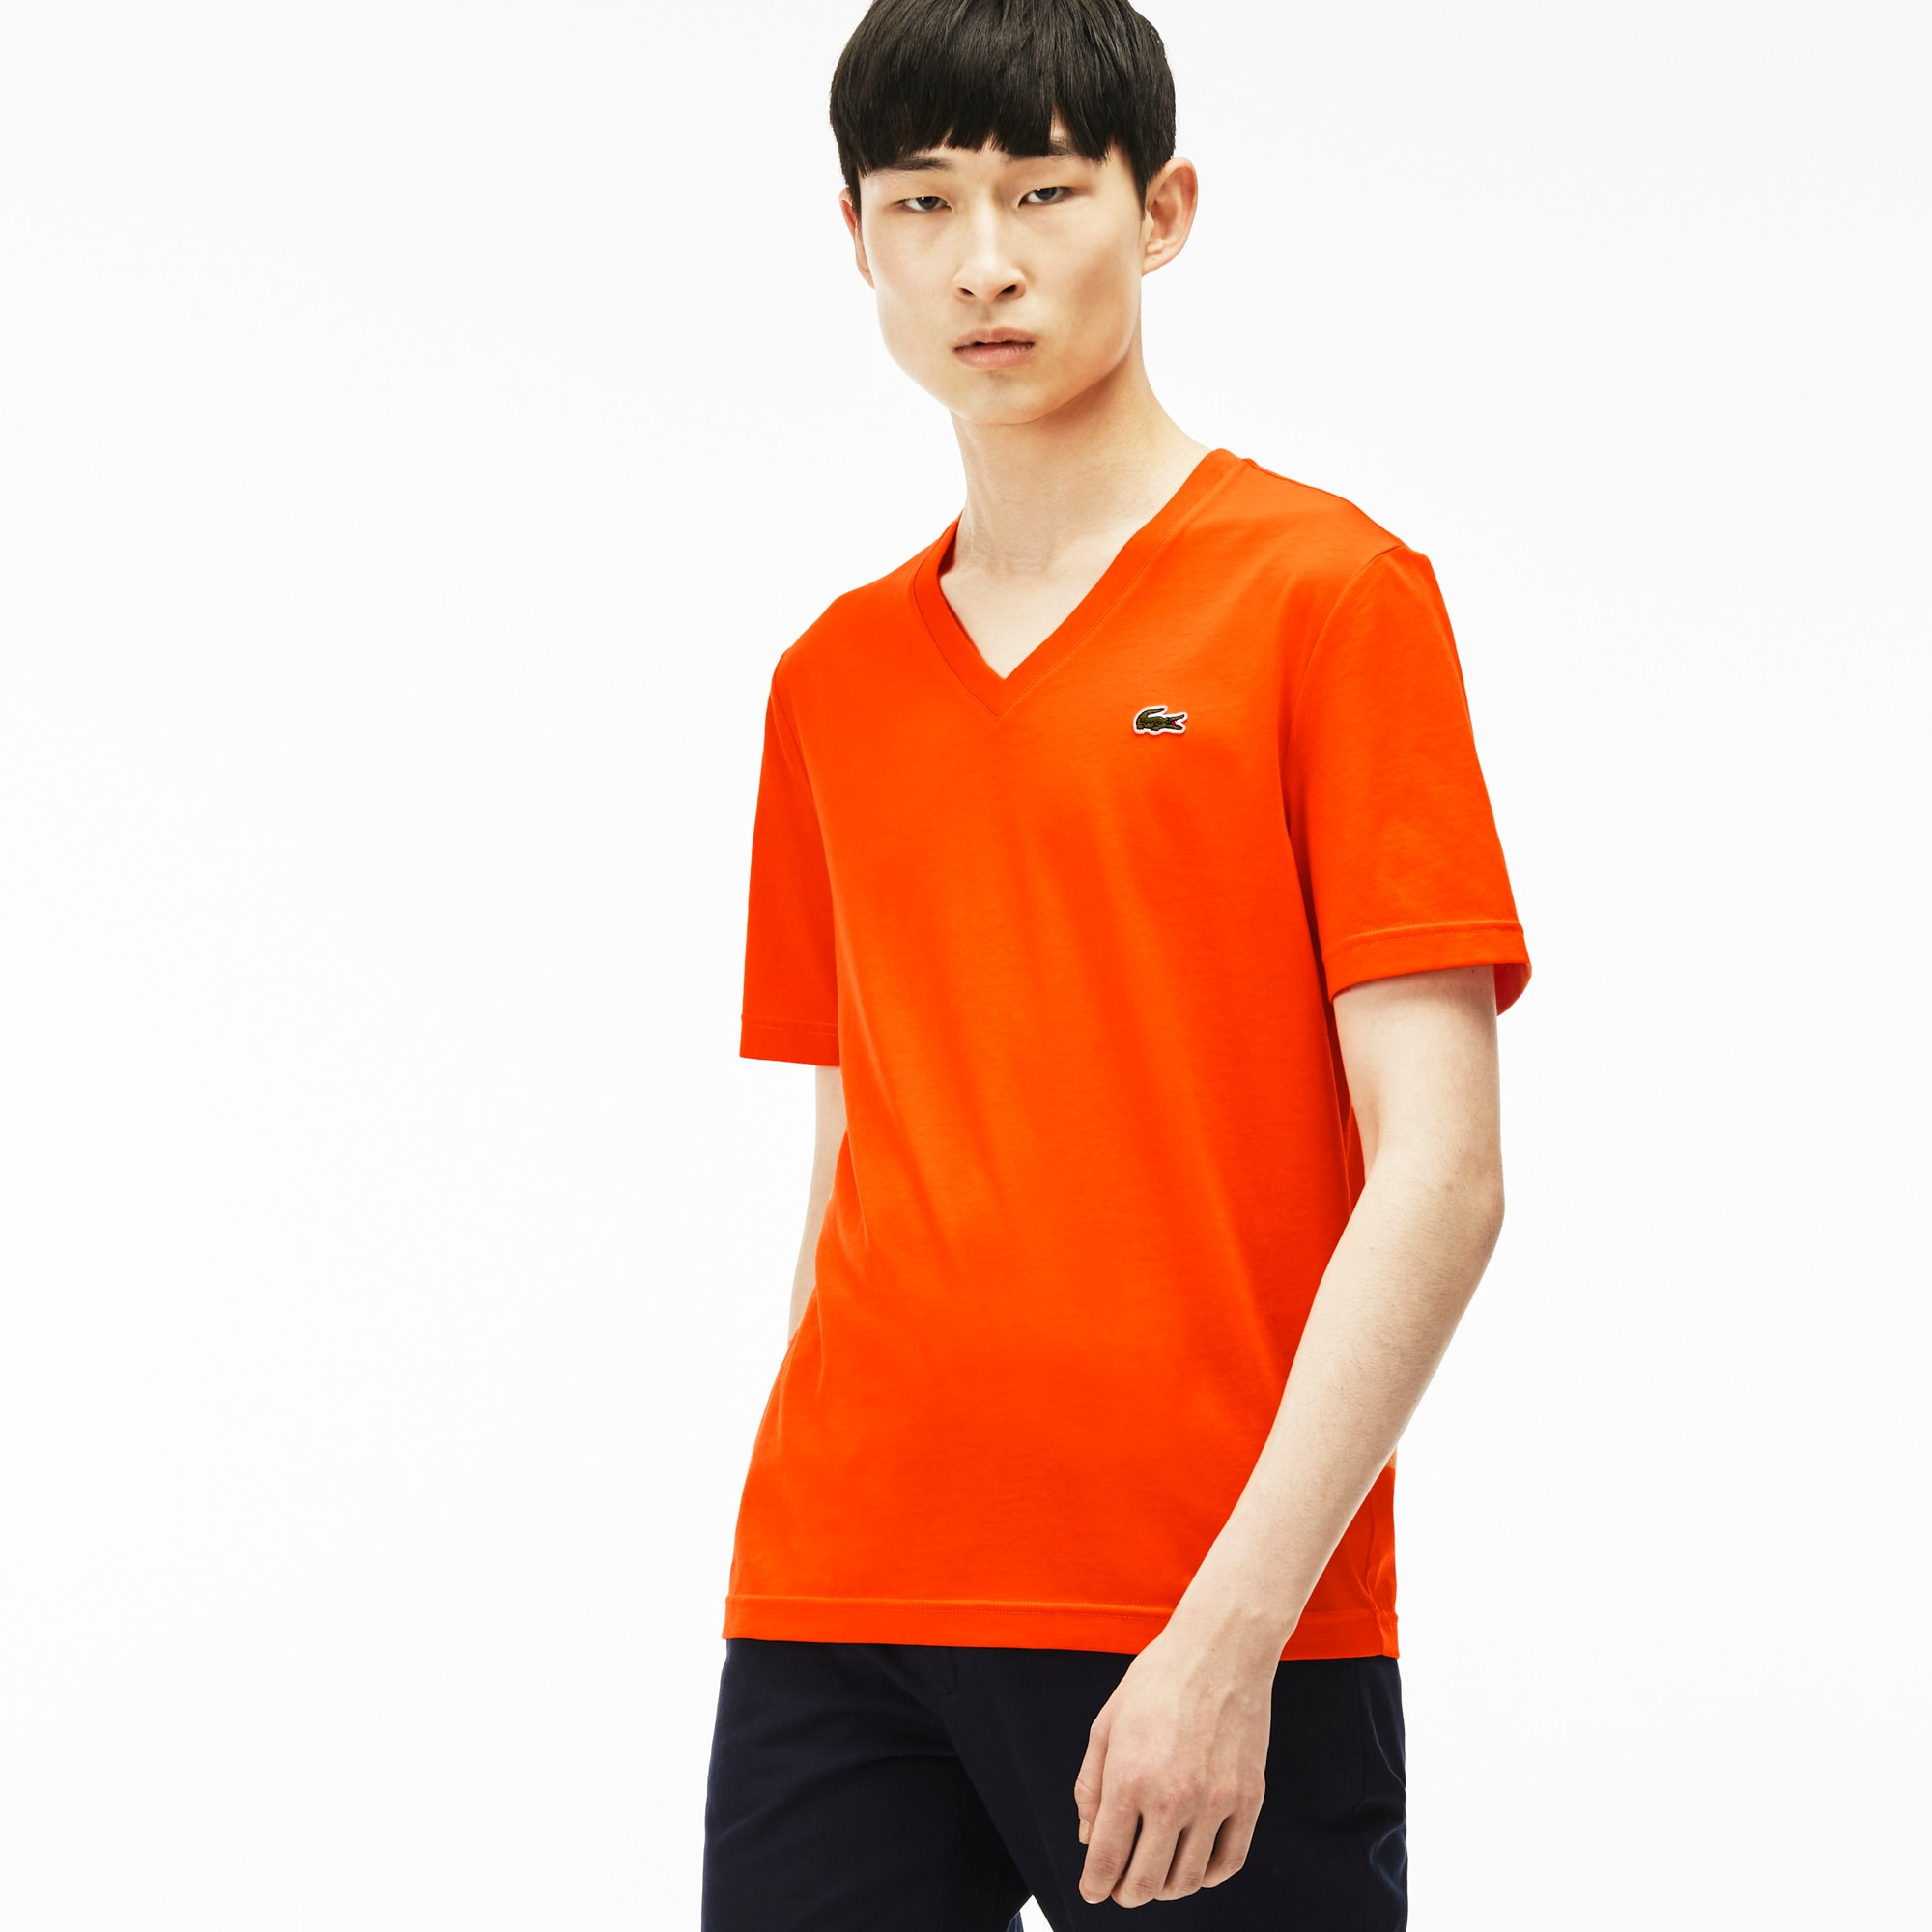 Men's Ultra-slim fit V-neck Lacoste LIVE T-shirt in jersey